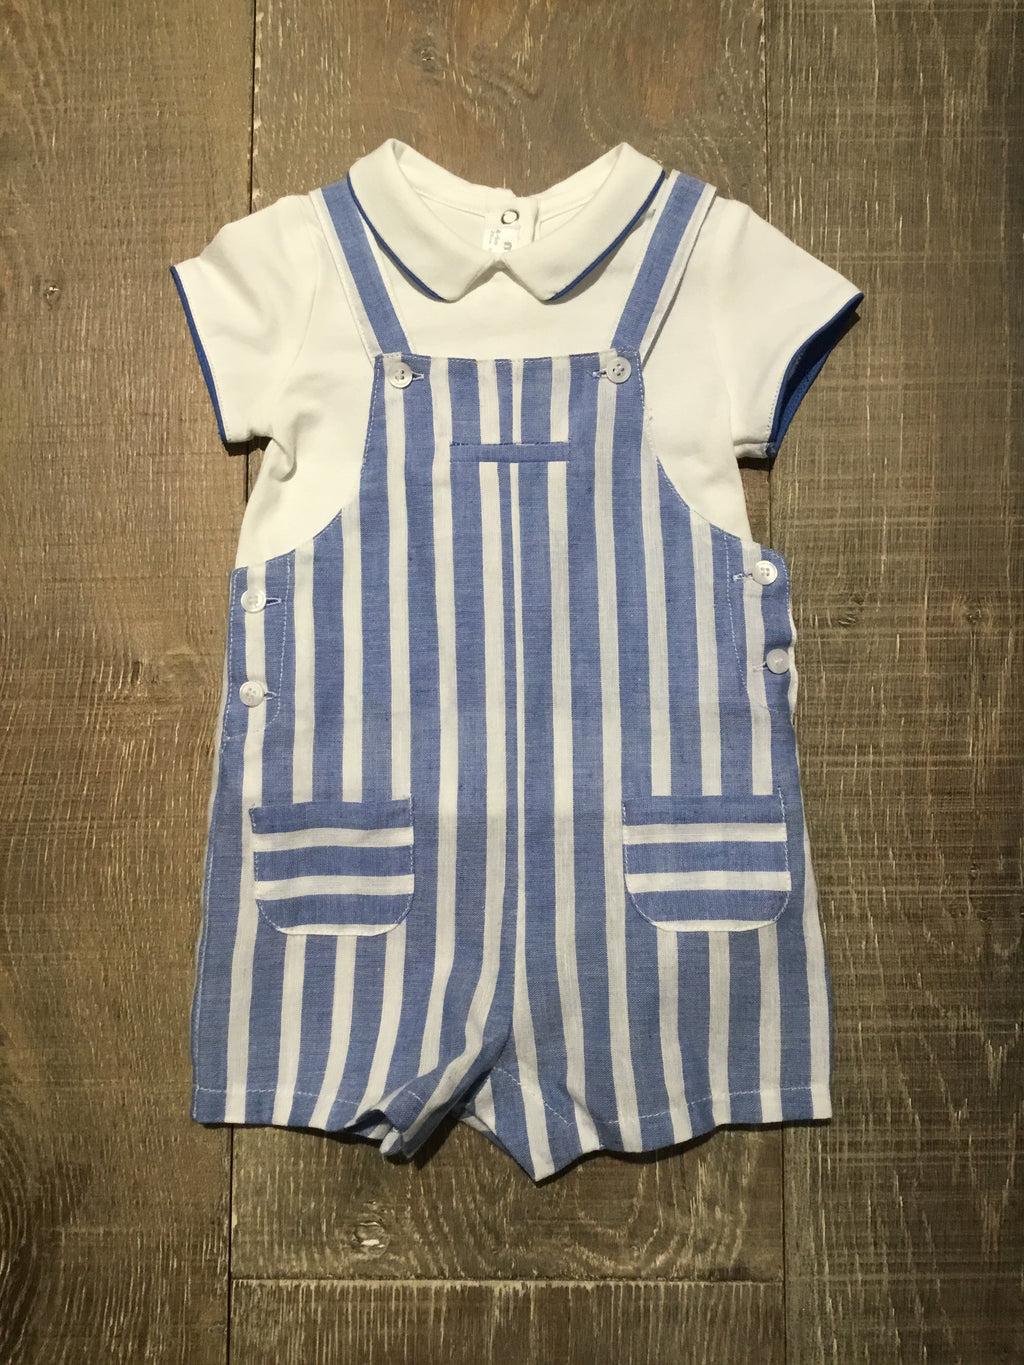 Blue & White Stripe Overall & Shirt Set